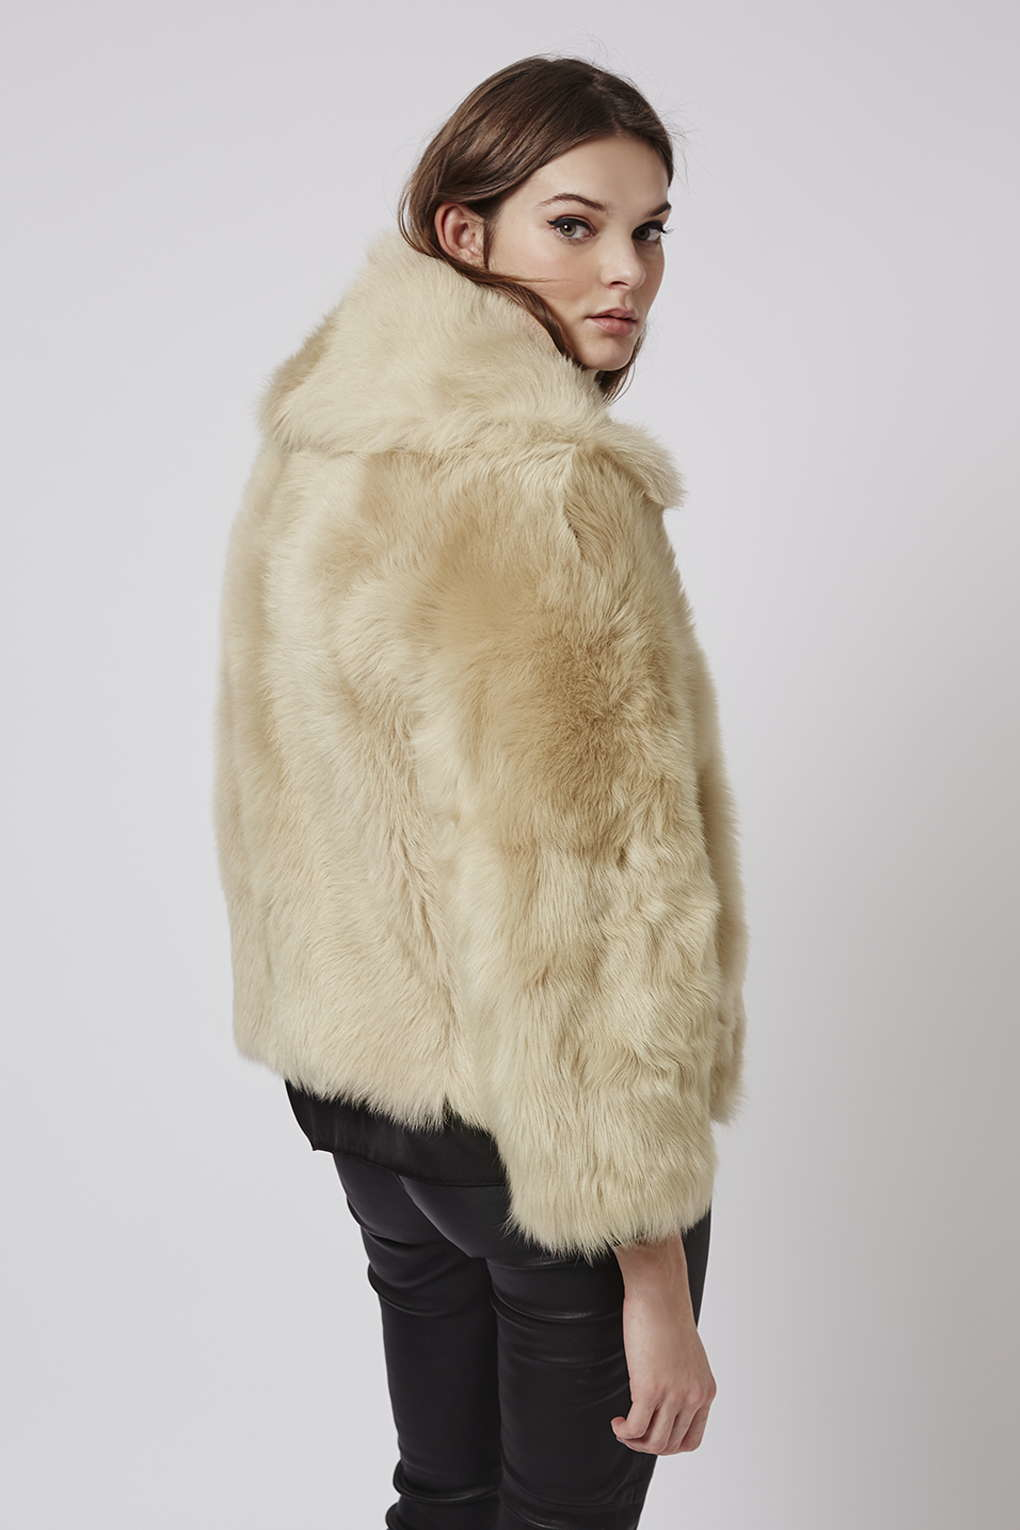 Topshop Premium Toscana Sheepskin Bomber Jacket in Natural | Lyst